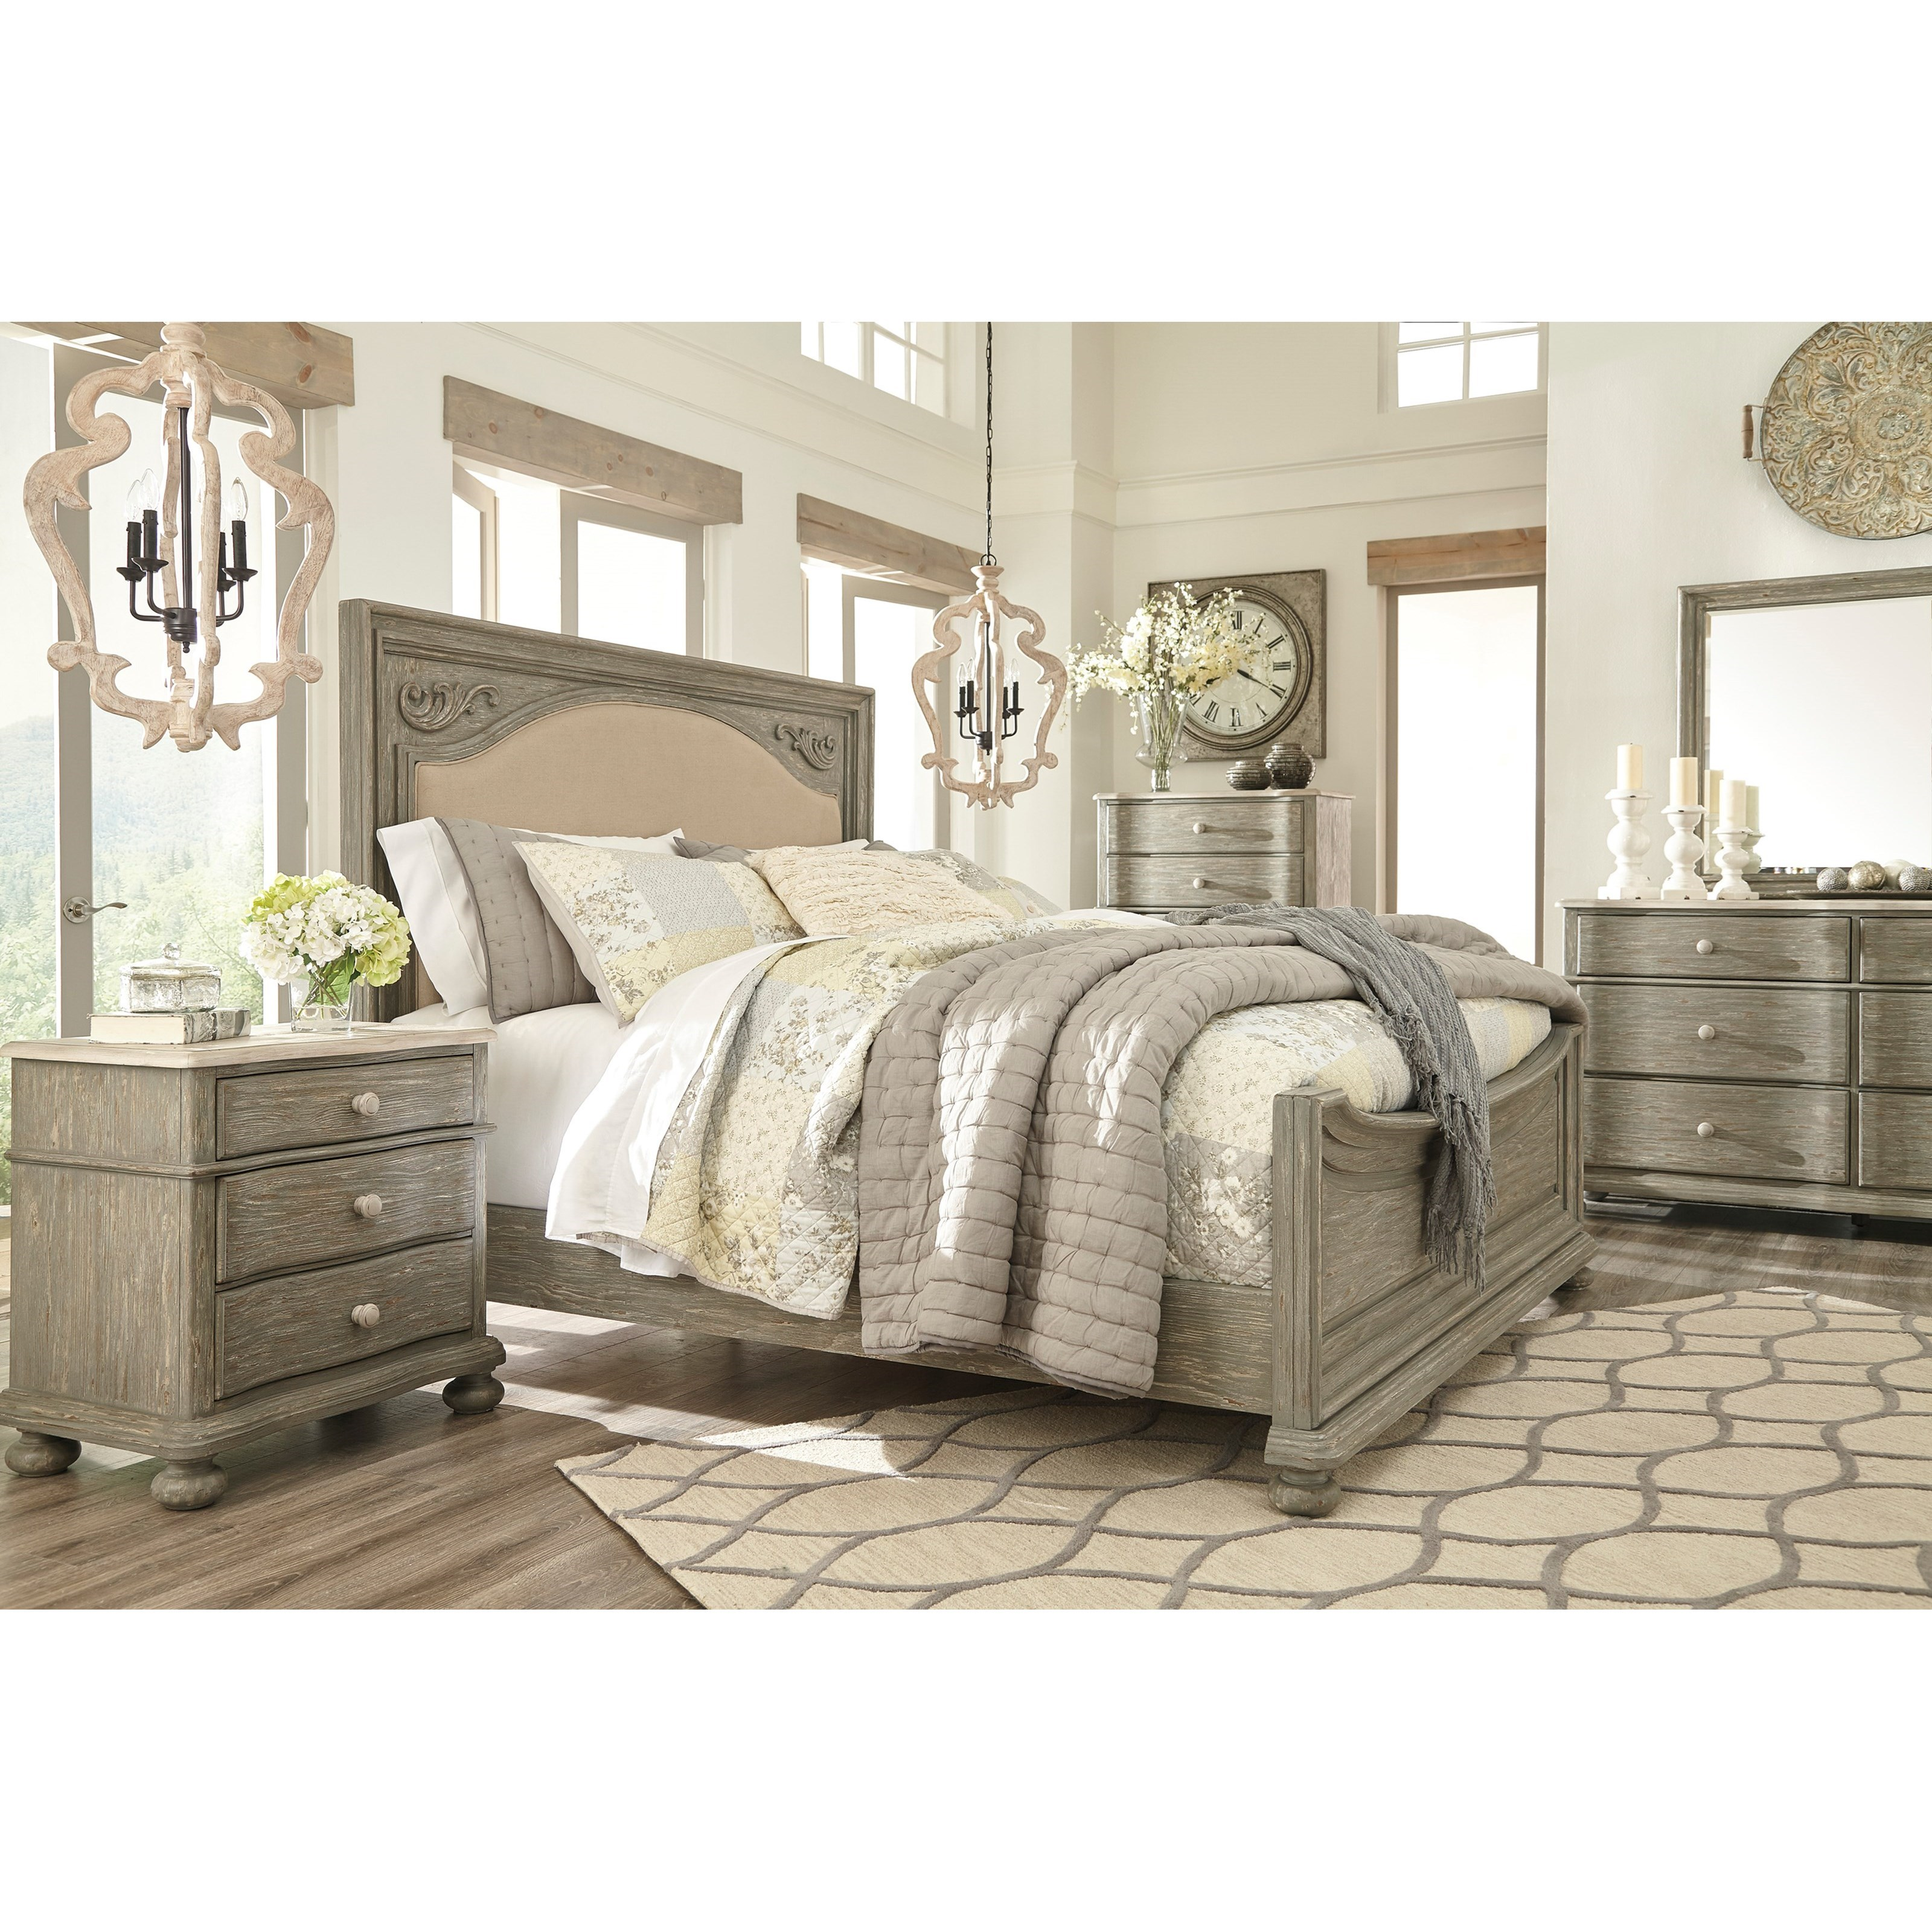 Signature Design By Ashley Queen Upholstered Bed In Gray